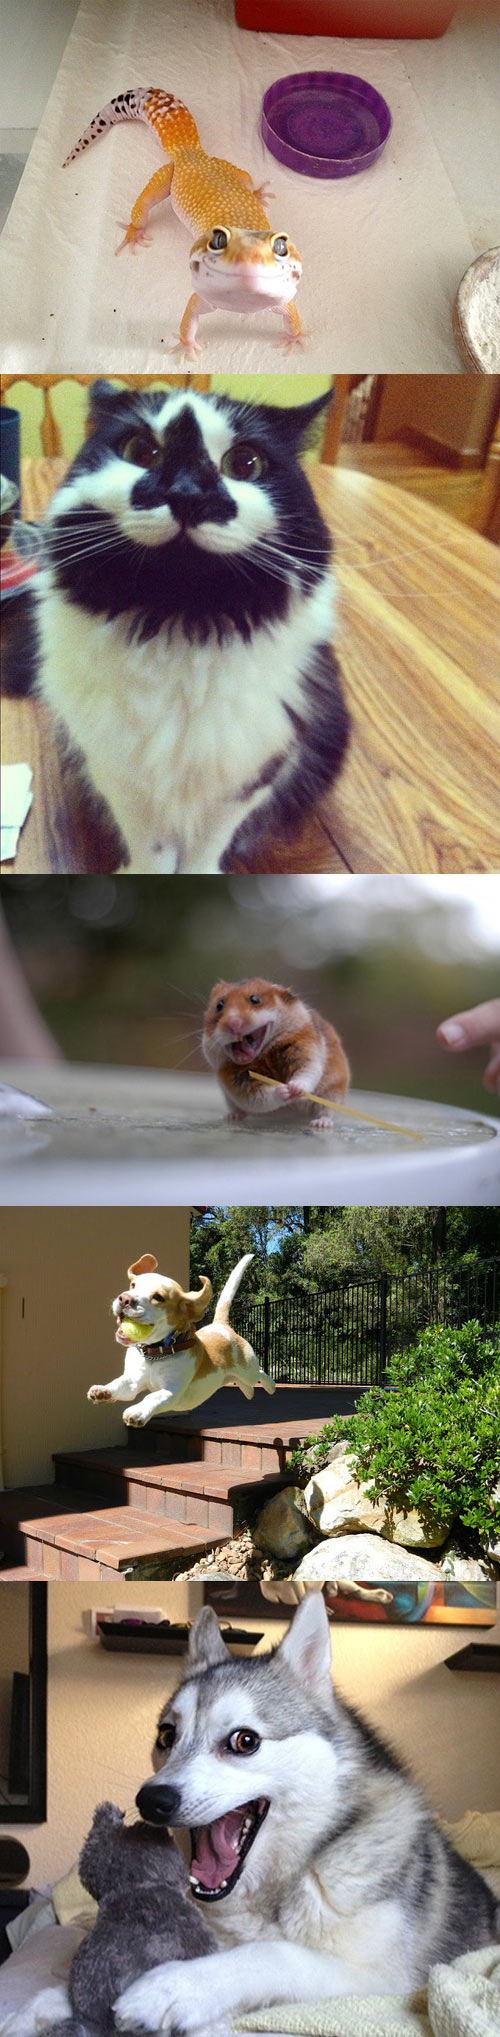 funny-picture-pet-animals-smiling-cat-dog-happiest